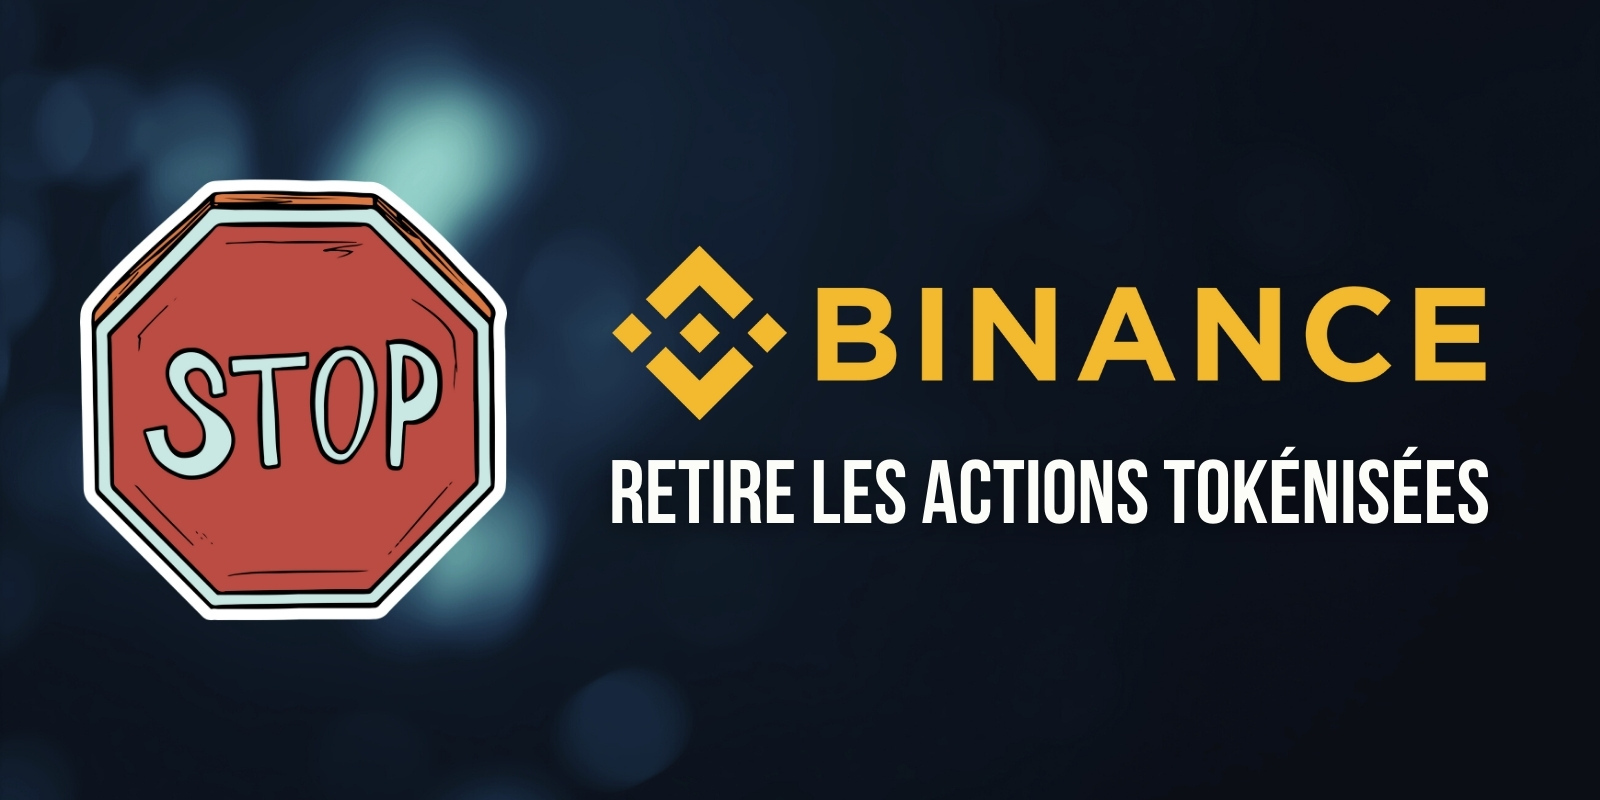 Binance abandons its tokenized stock service without giving any real explanation